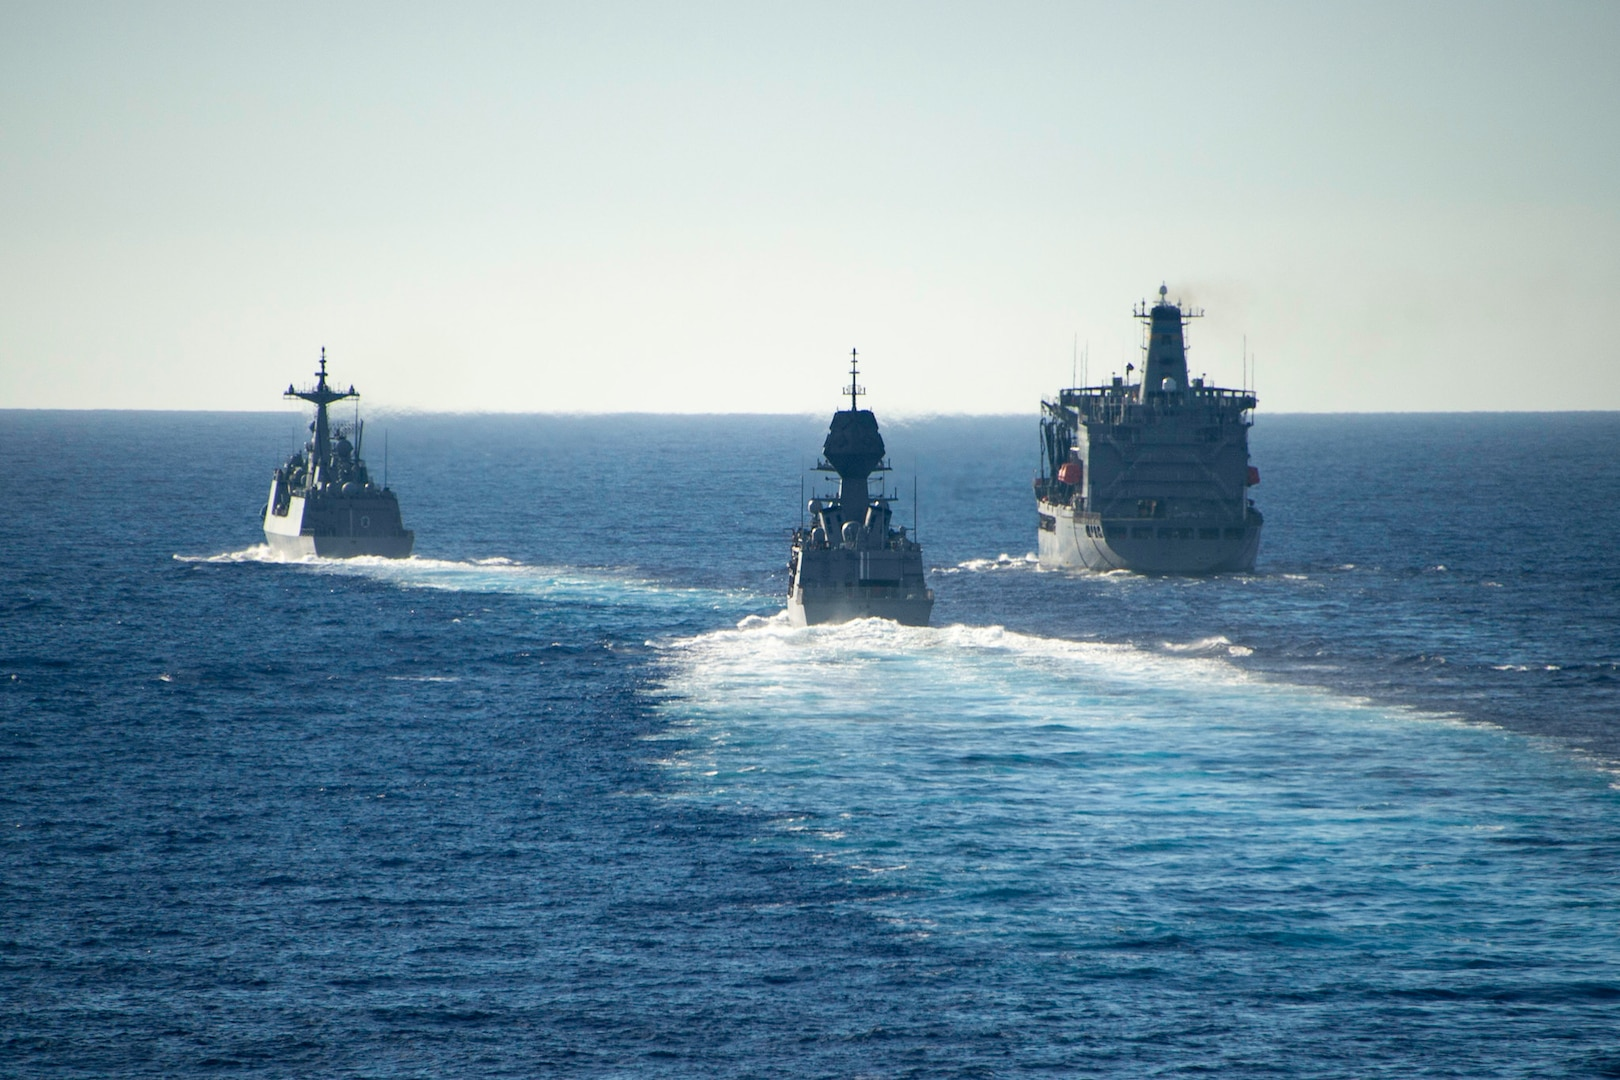 Exercise Rim of the Pacific 2020 Begins